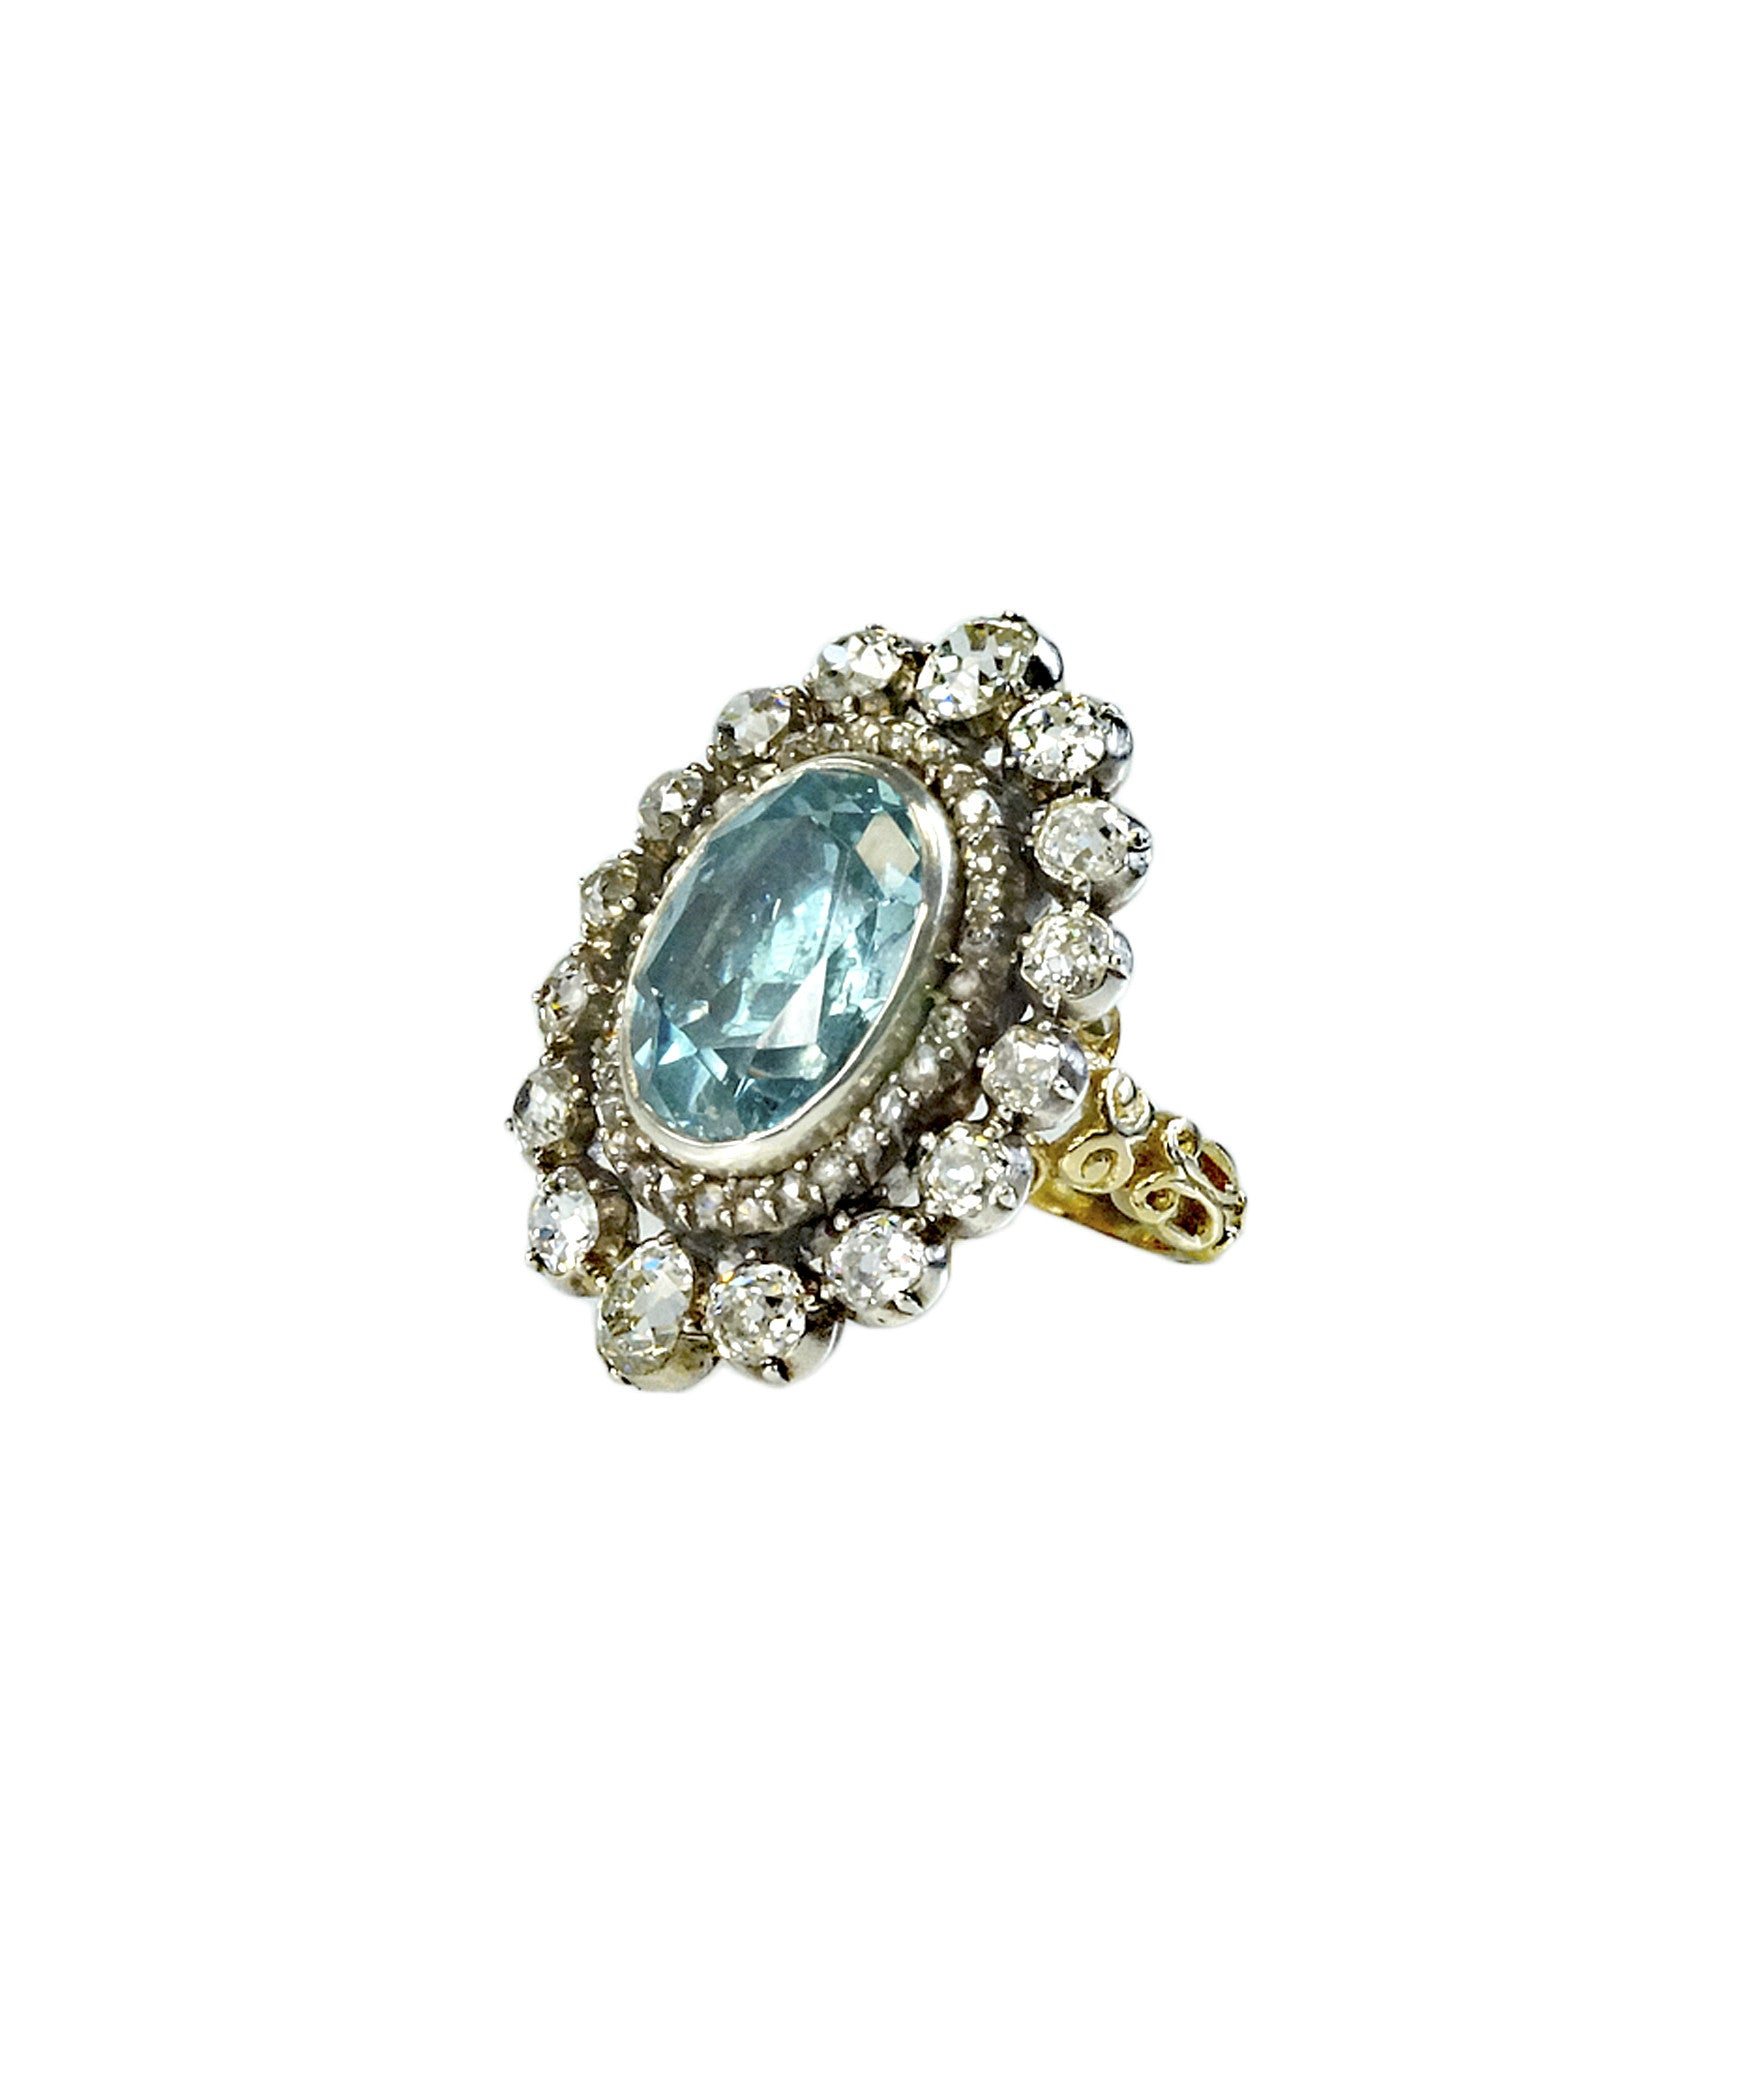 img ring topic or rings me love i aquamarine d rhr other show to bees your see jewellery